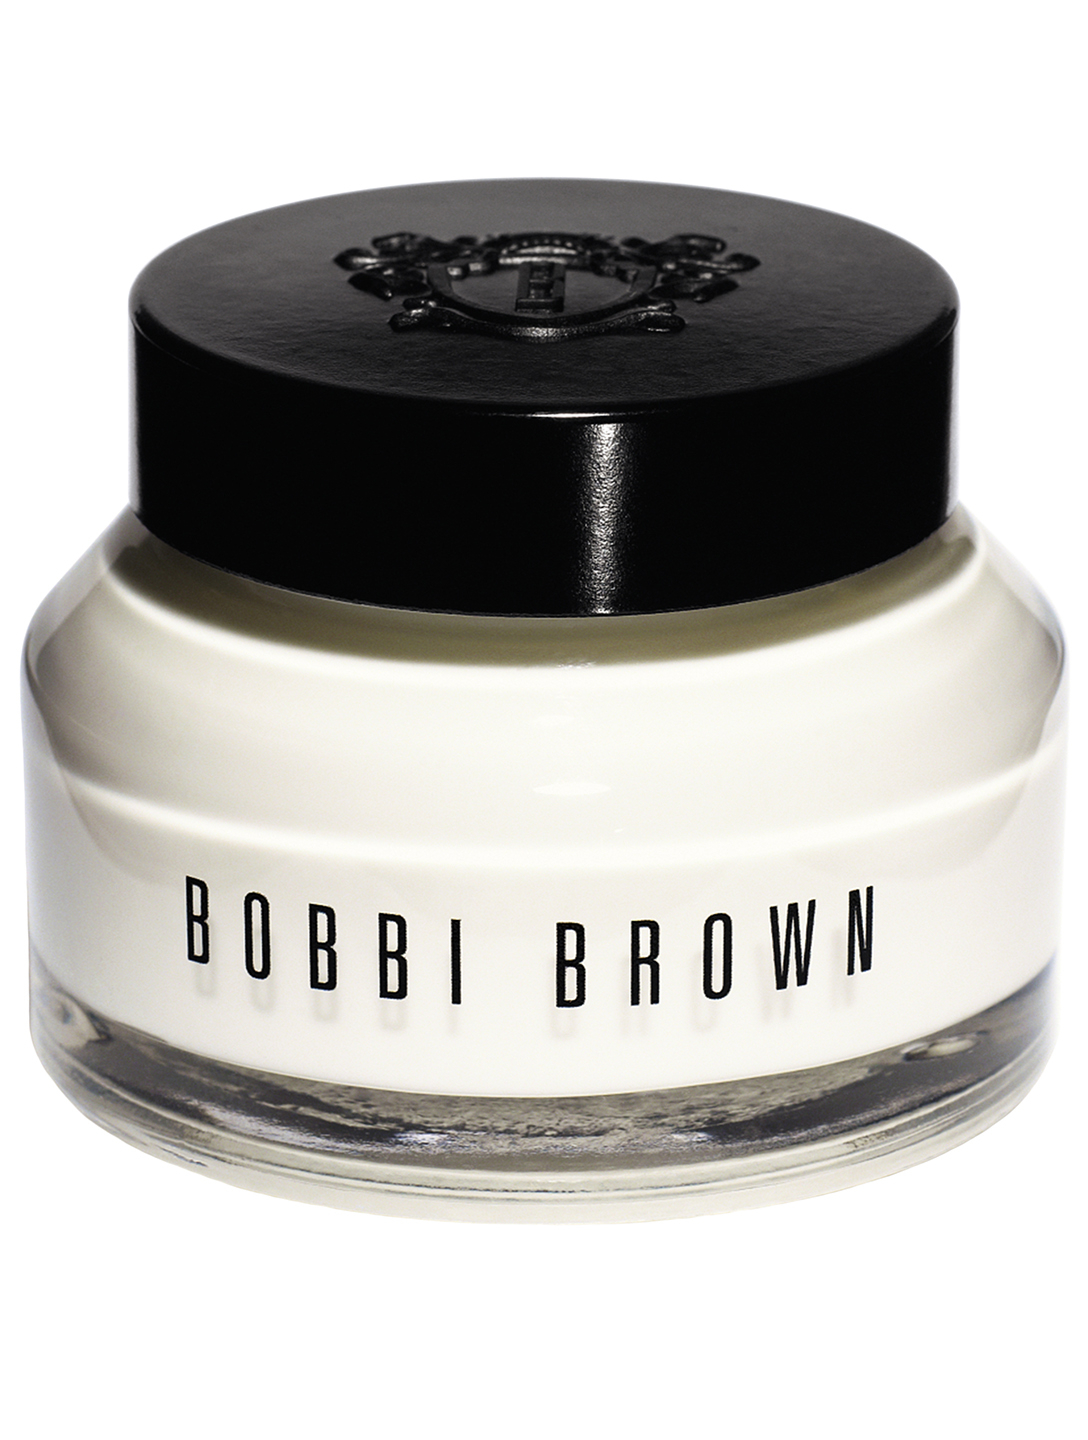 BOBBI BROWN Hydrating Face Cream Beauty